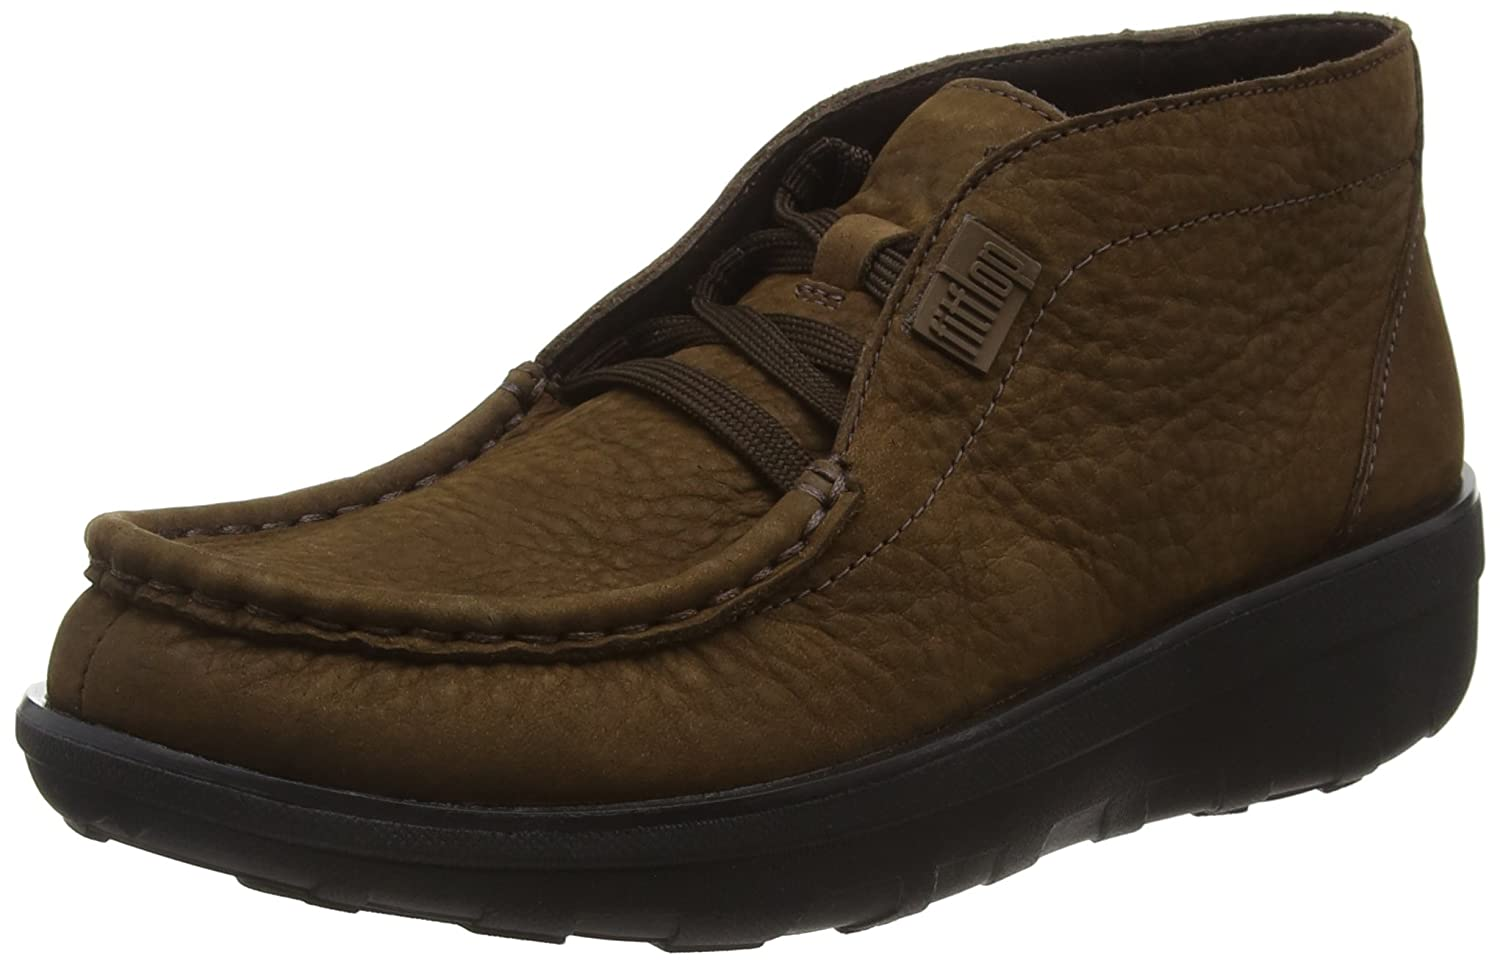 FitFlop Damen Damen FitFlop Loaff Lace-up Stiefeletten, Schwarz Braun (Chocolate 030) 2e9865